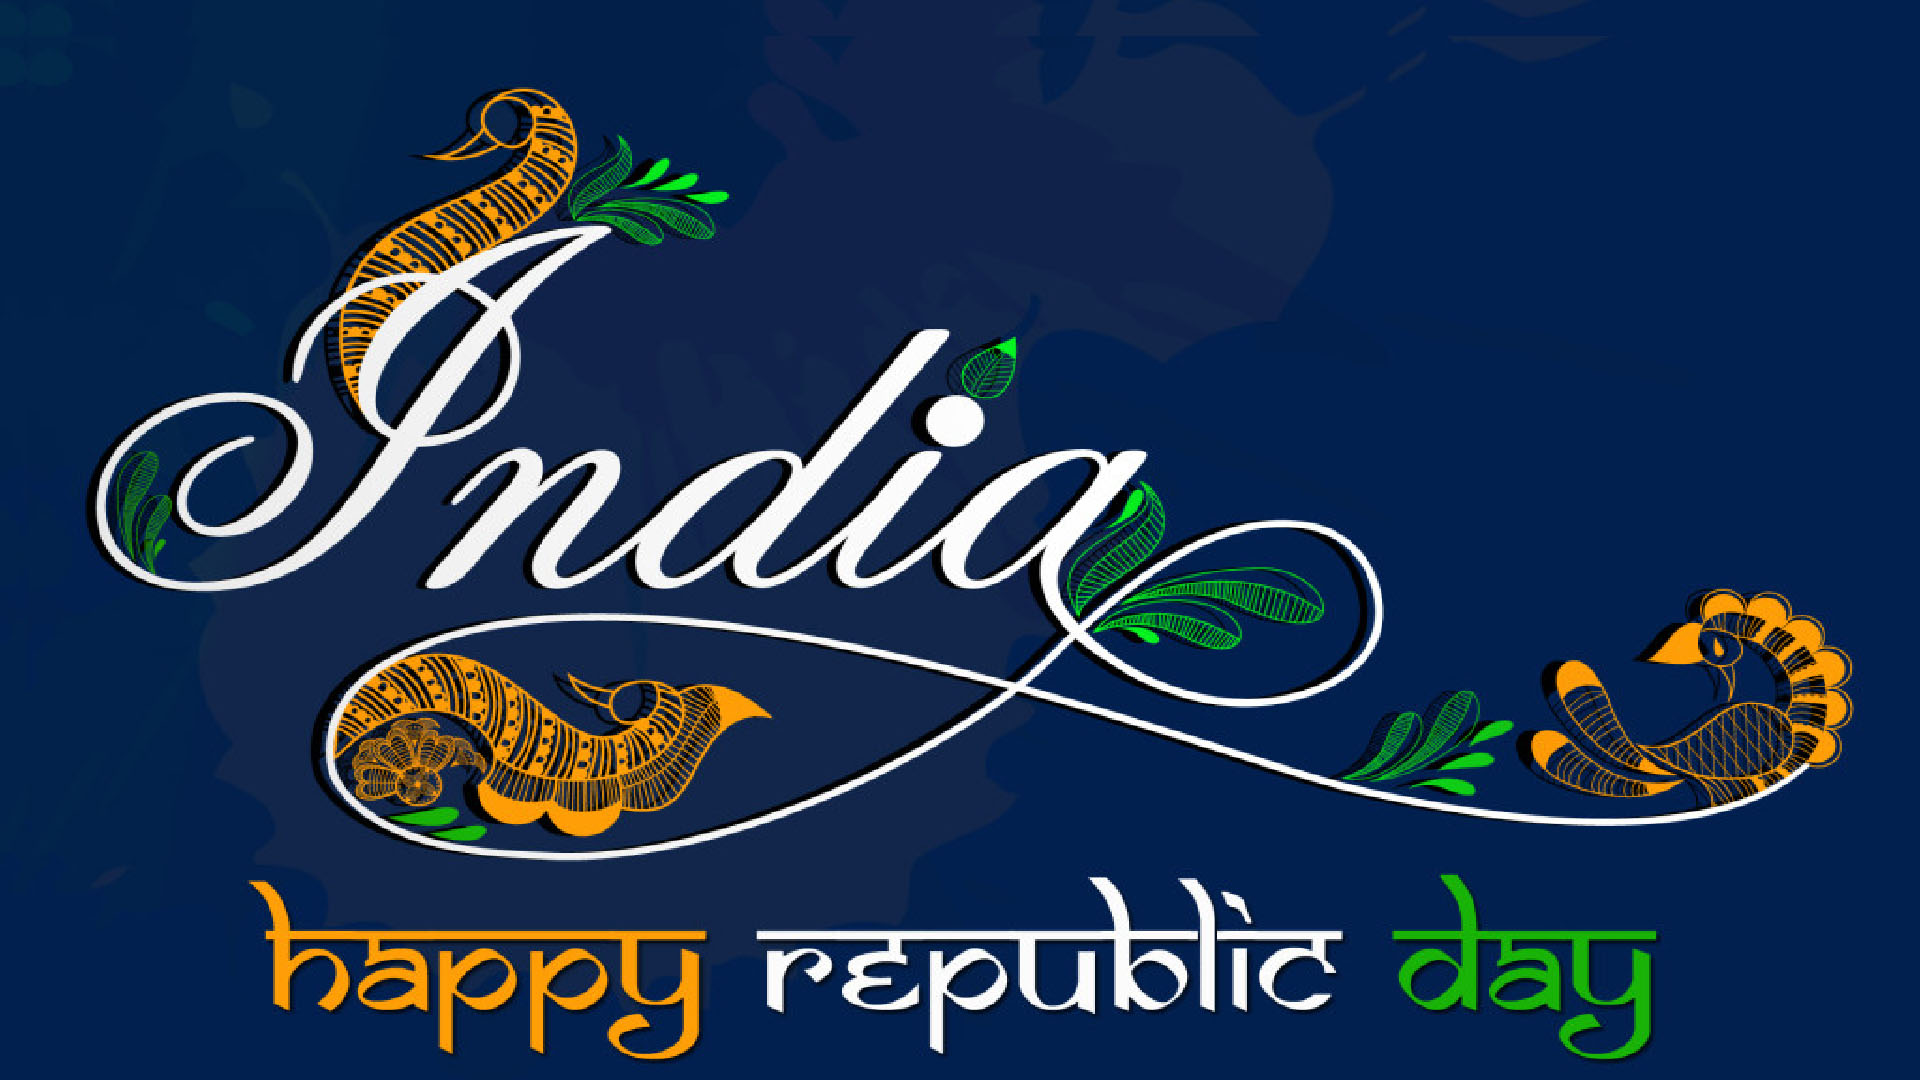 26 January Republic Day Hd Wallpaper Free Download